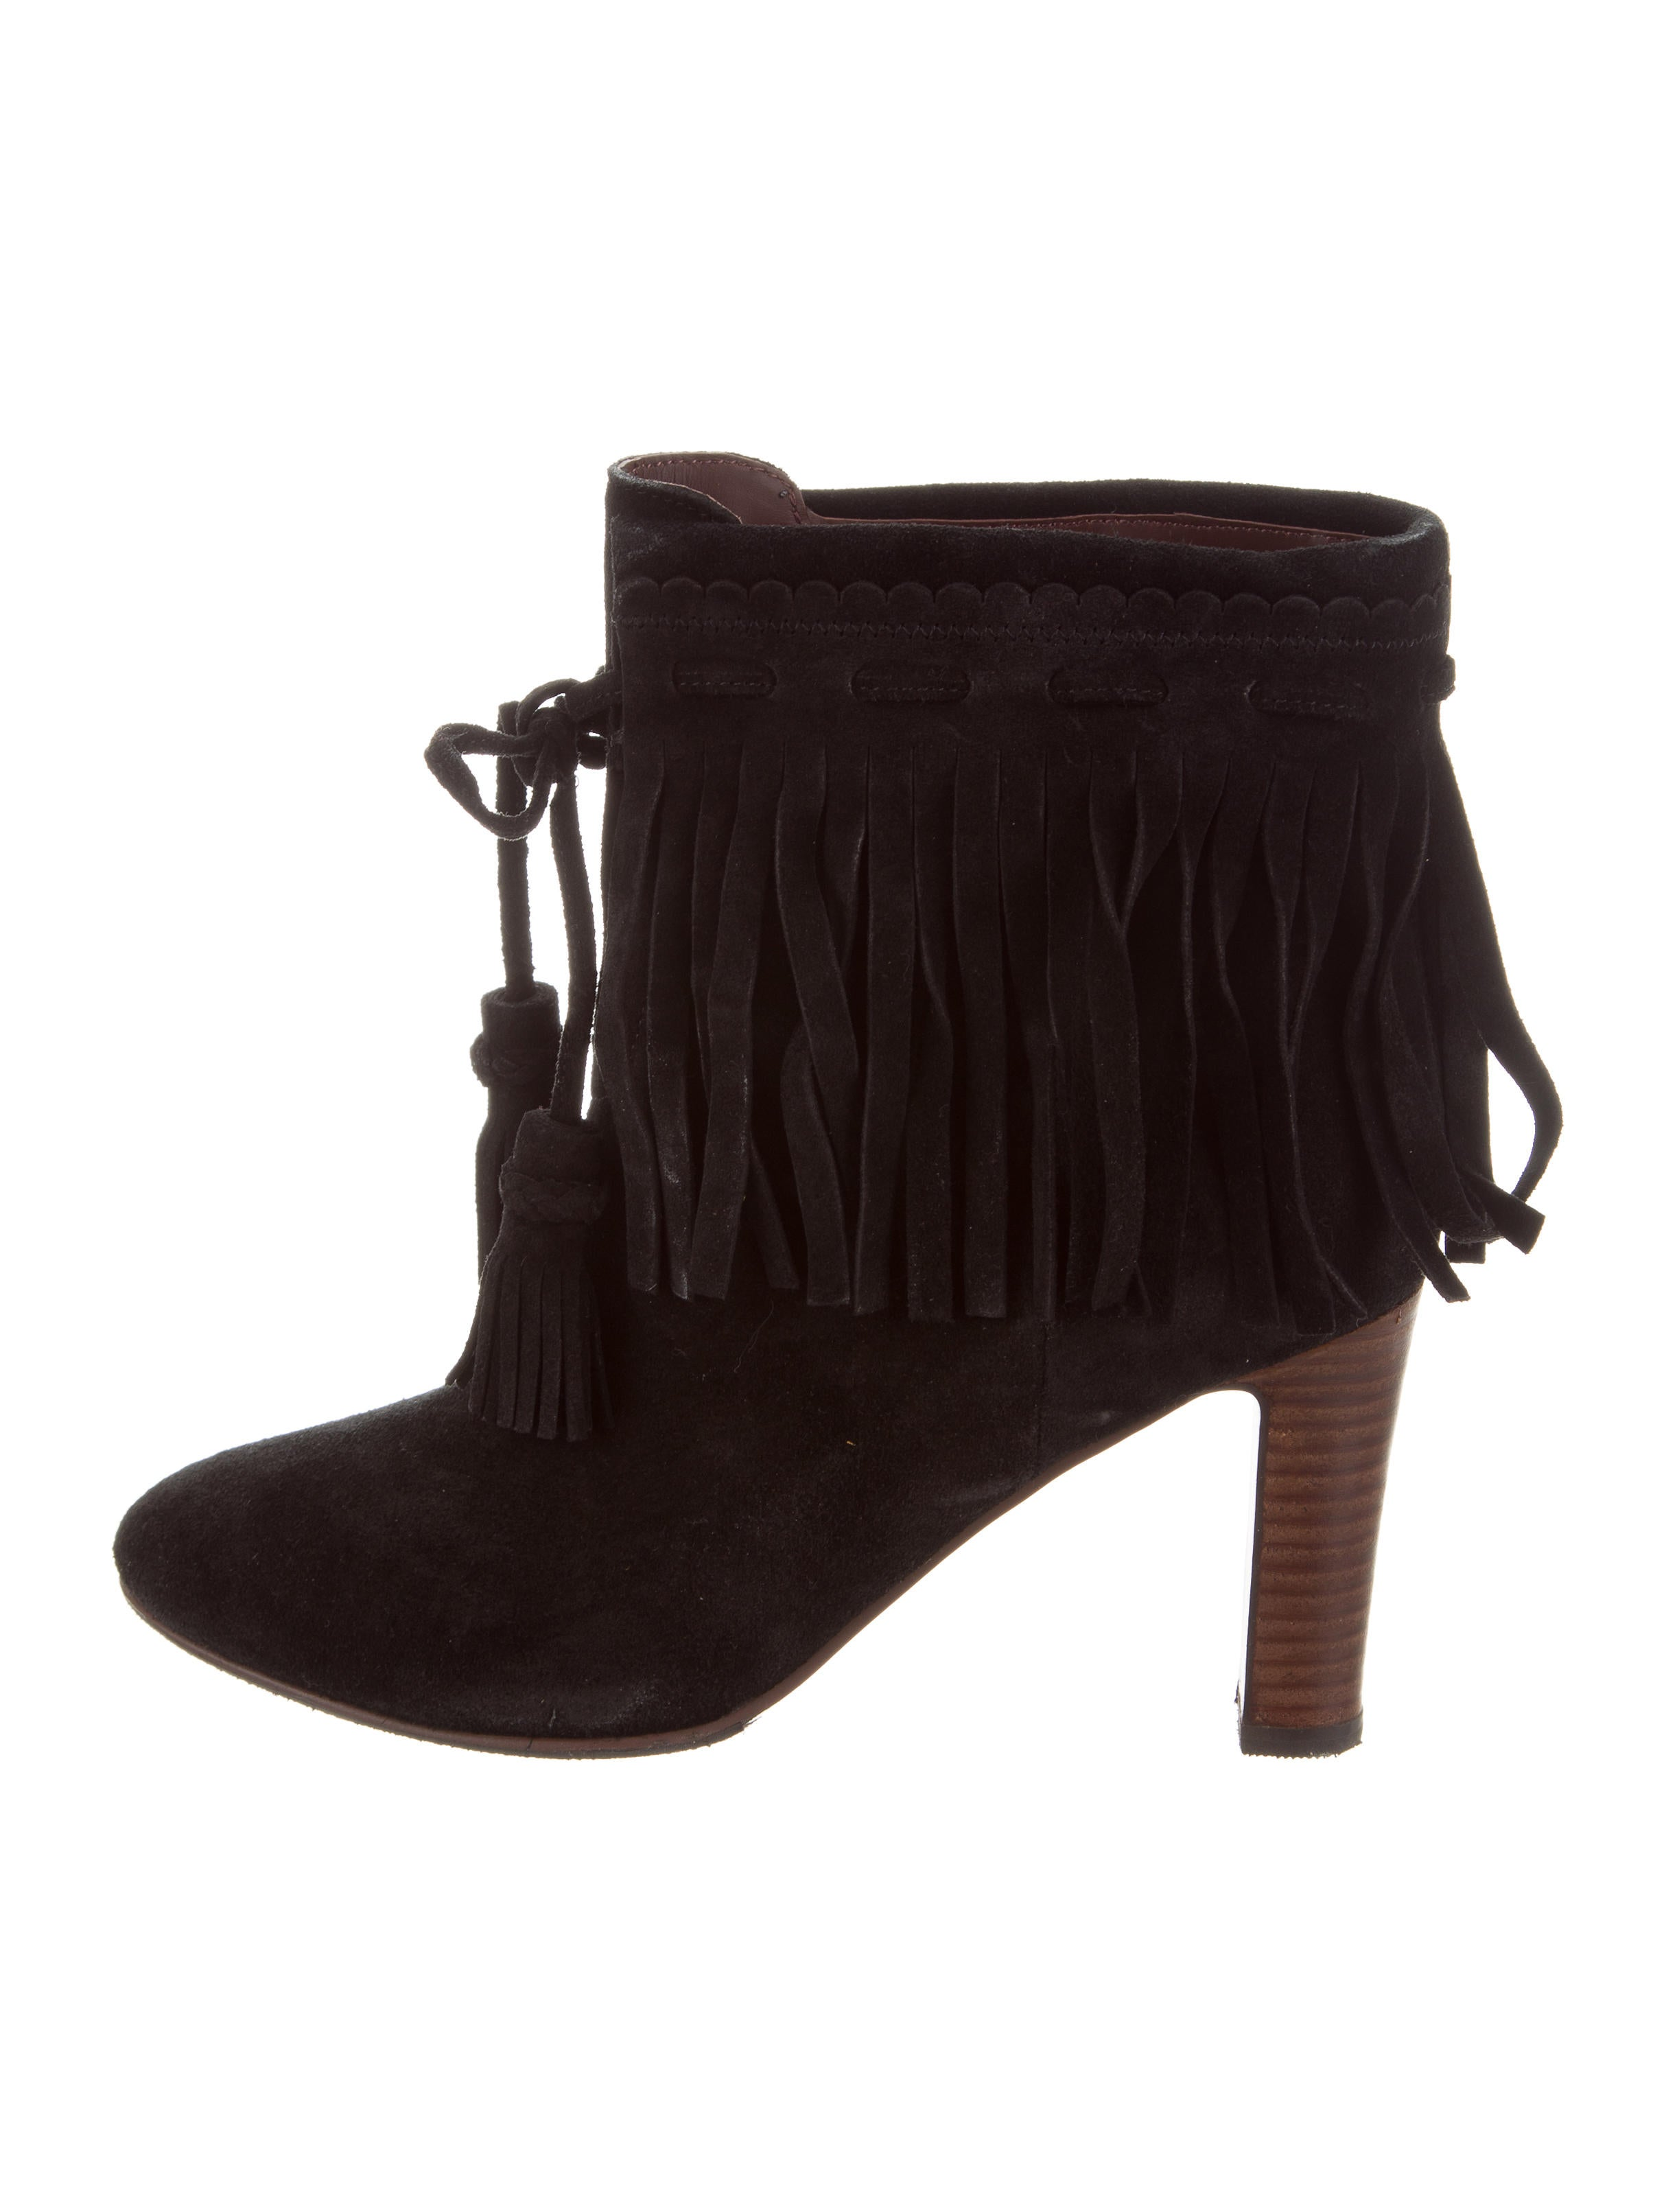 genuine online sale sast See by Chloé Fringe-Trimmed Ankle Boots professional online free shipping comfortable free shipping outlet locations 9cABZ6yGNc